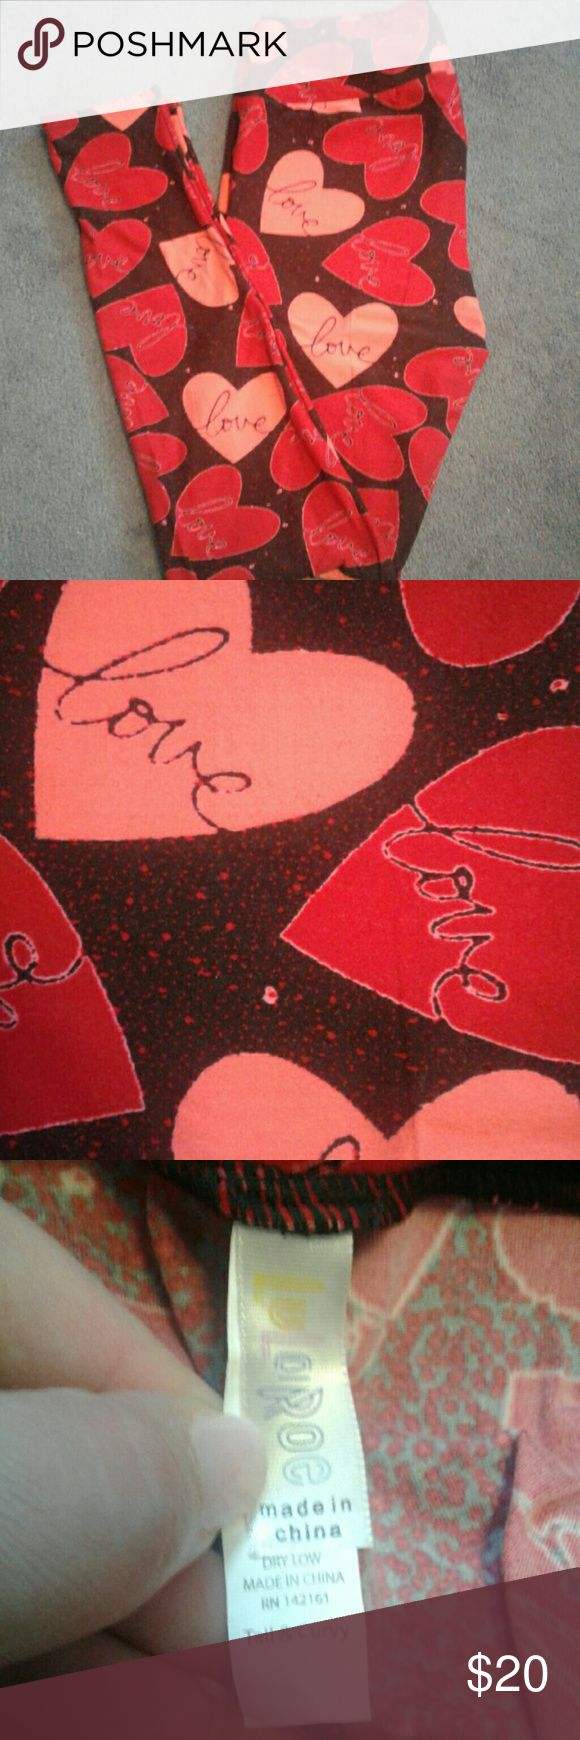 """LulaRoe Valentine's Day leggings Like new, LulaRoe leggings worn once, washed per LLR instructions. Black background with red and pink hearts and the word """"love"""" on them. There is also a pink and red """"splatter"""" pattern on the background. LuLaRoe Pants Leggings"""